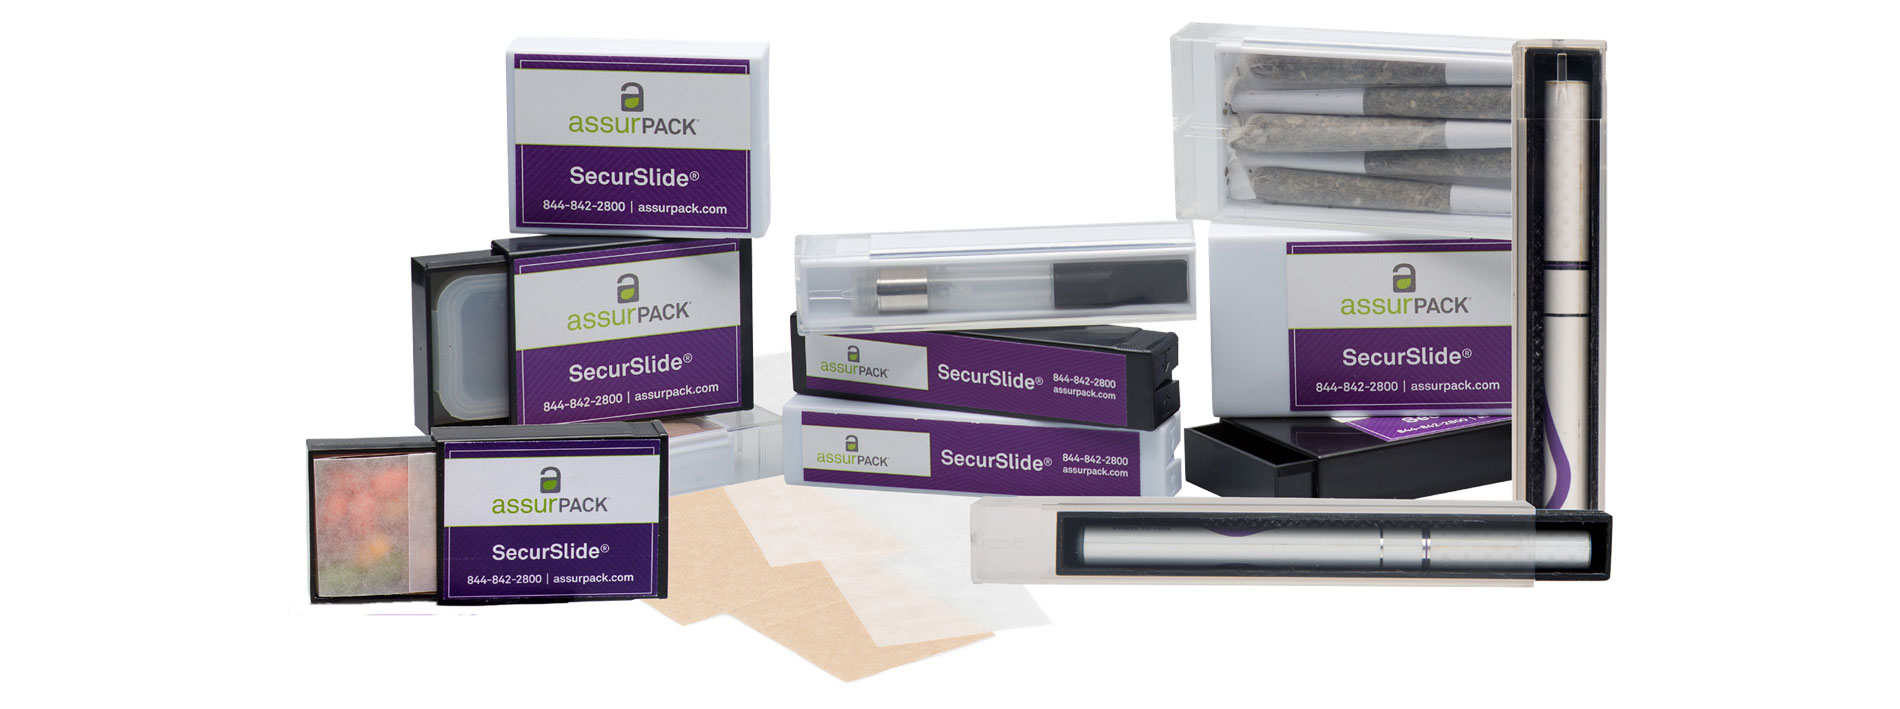 AssurPACK SecurSlide®. Preroll, concentrate, and vape cartridge packaging